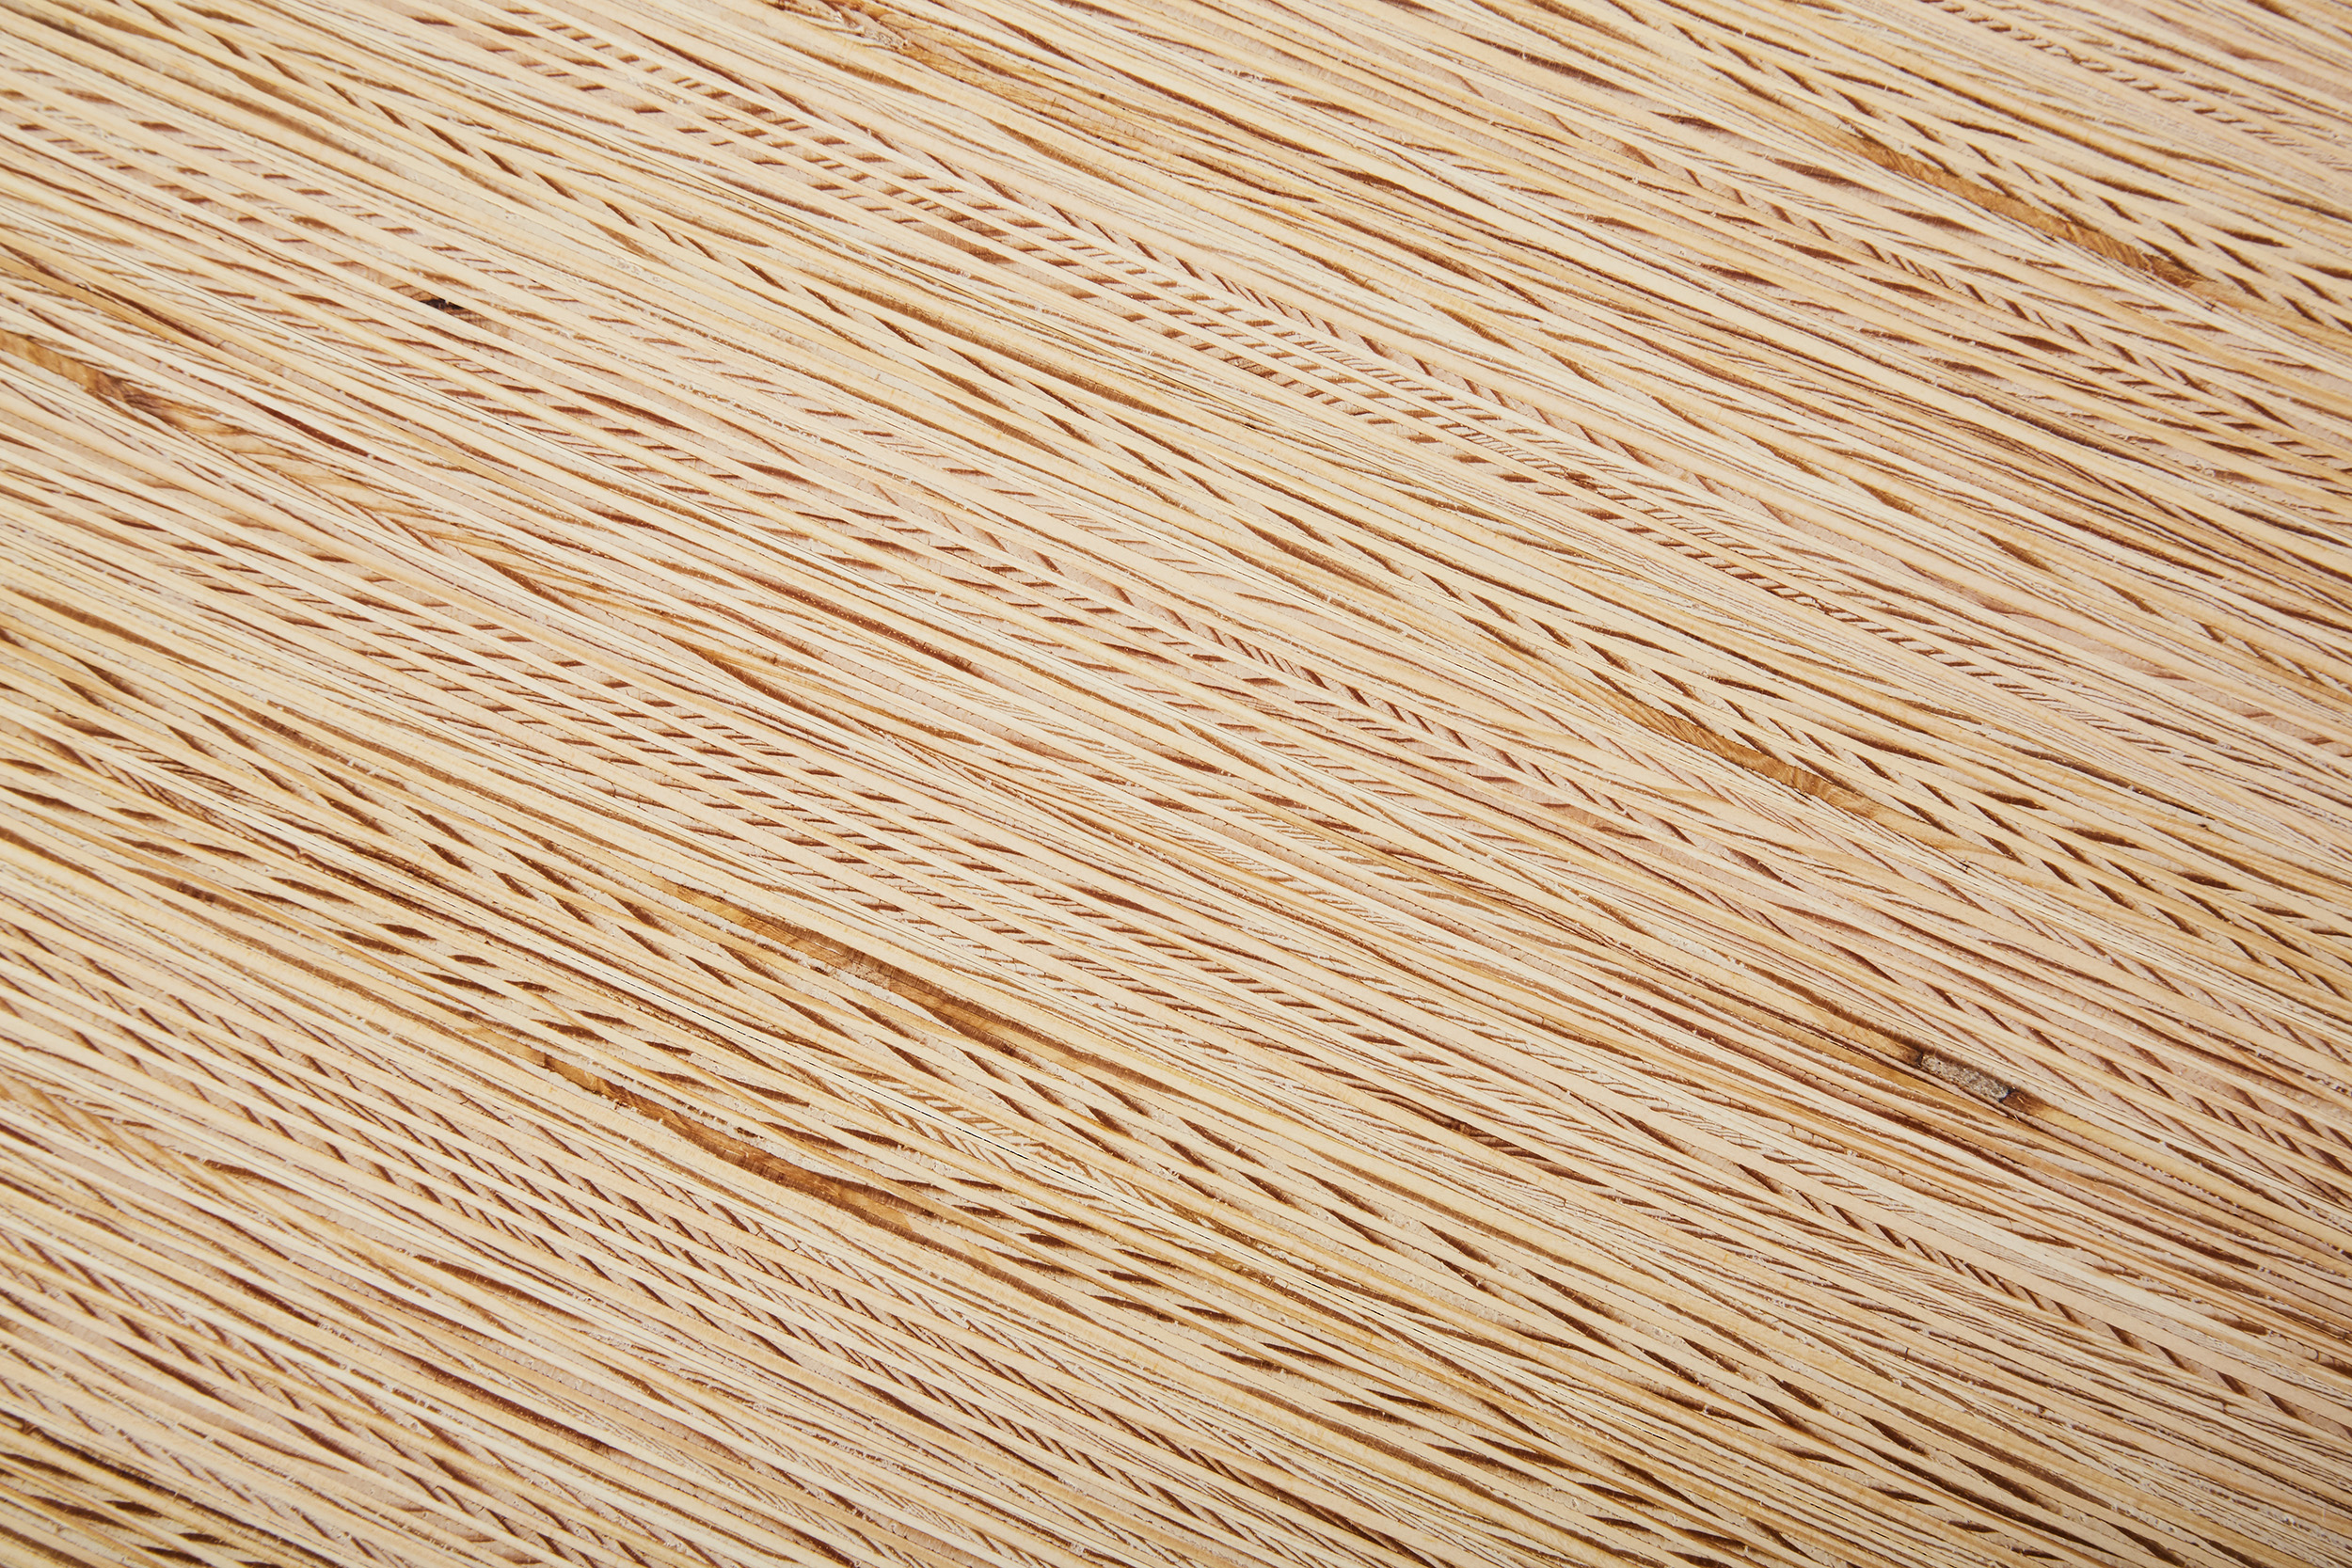 The edge grain pine detail used on the kitchen counters.